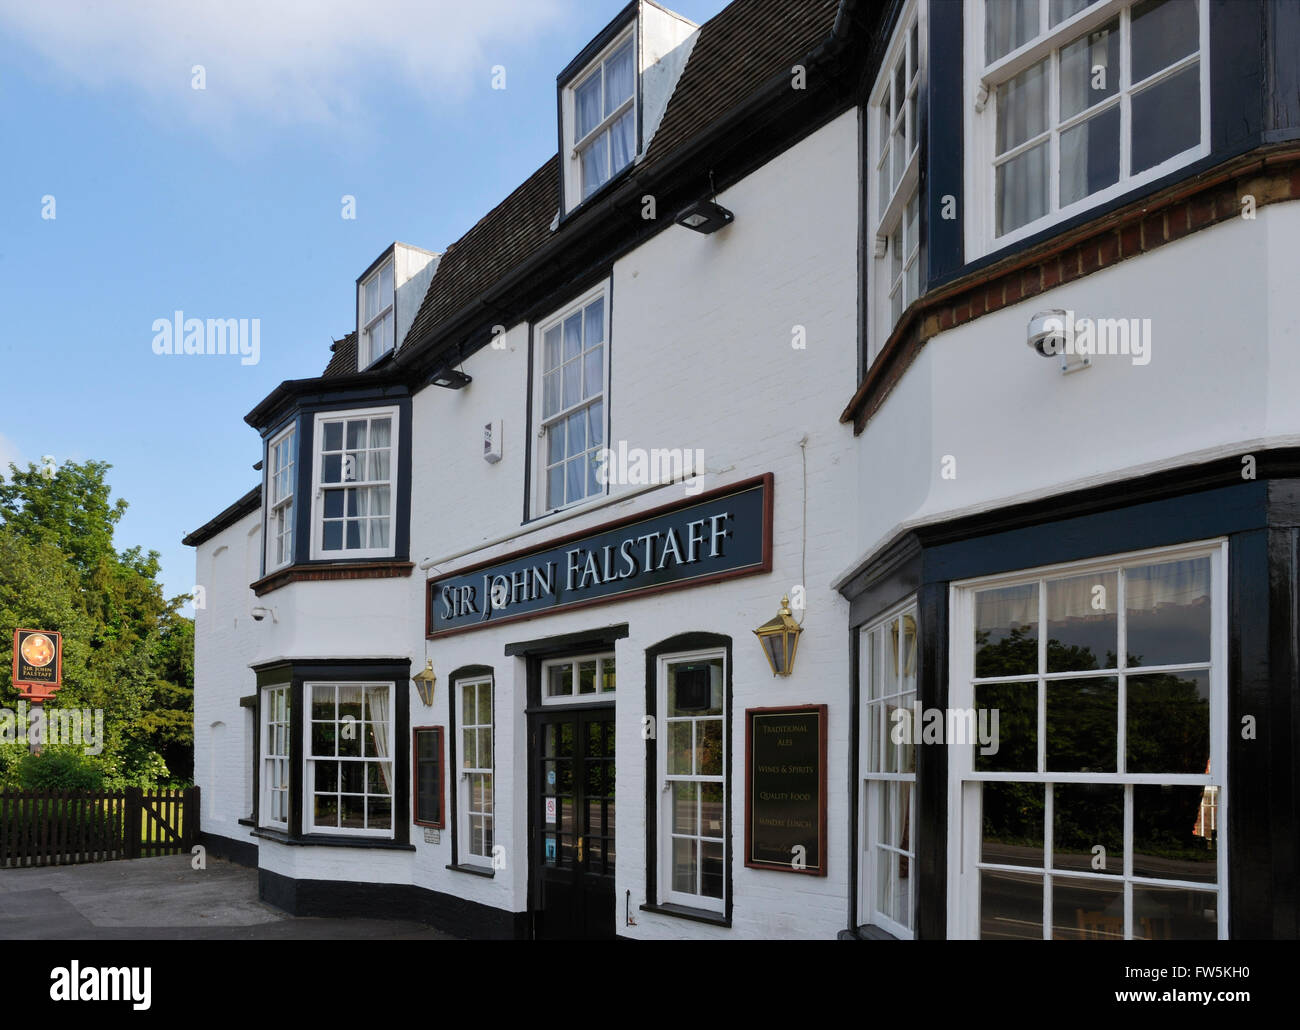 Sir John Falstaff Inn, opposite Charles Dickens's last home at Gad's Hill Place, Higham, Rochester, Kent, - Stock Image